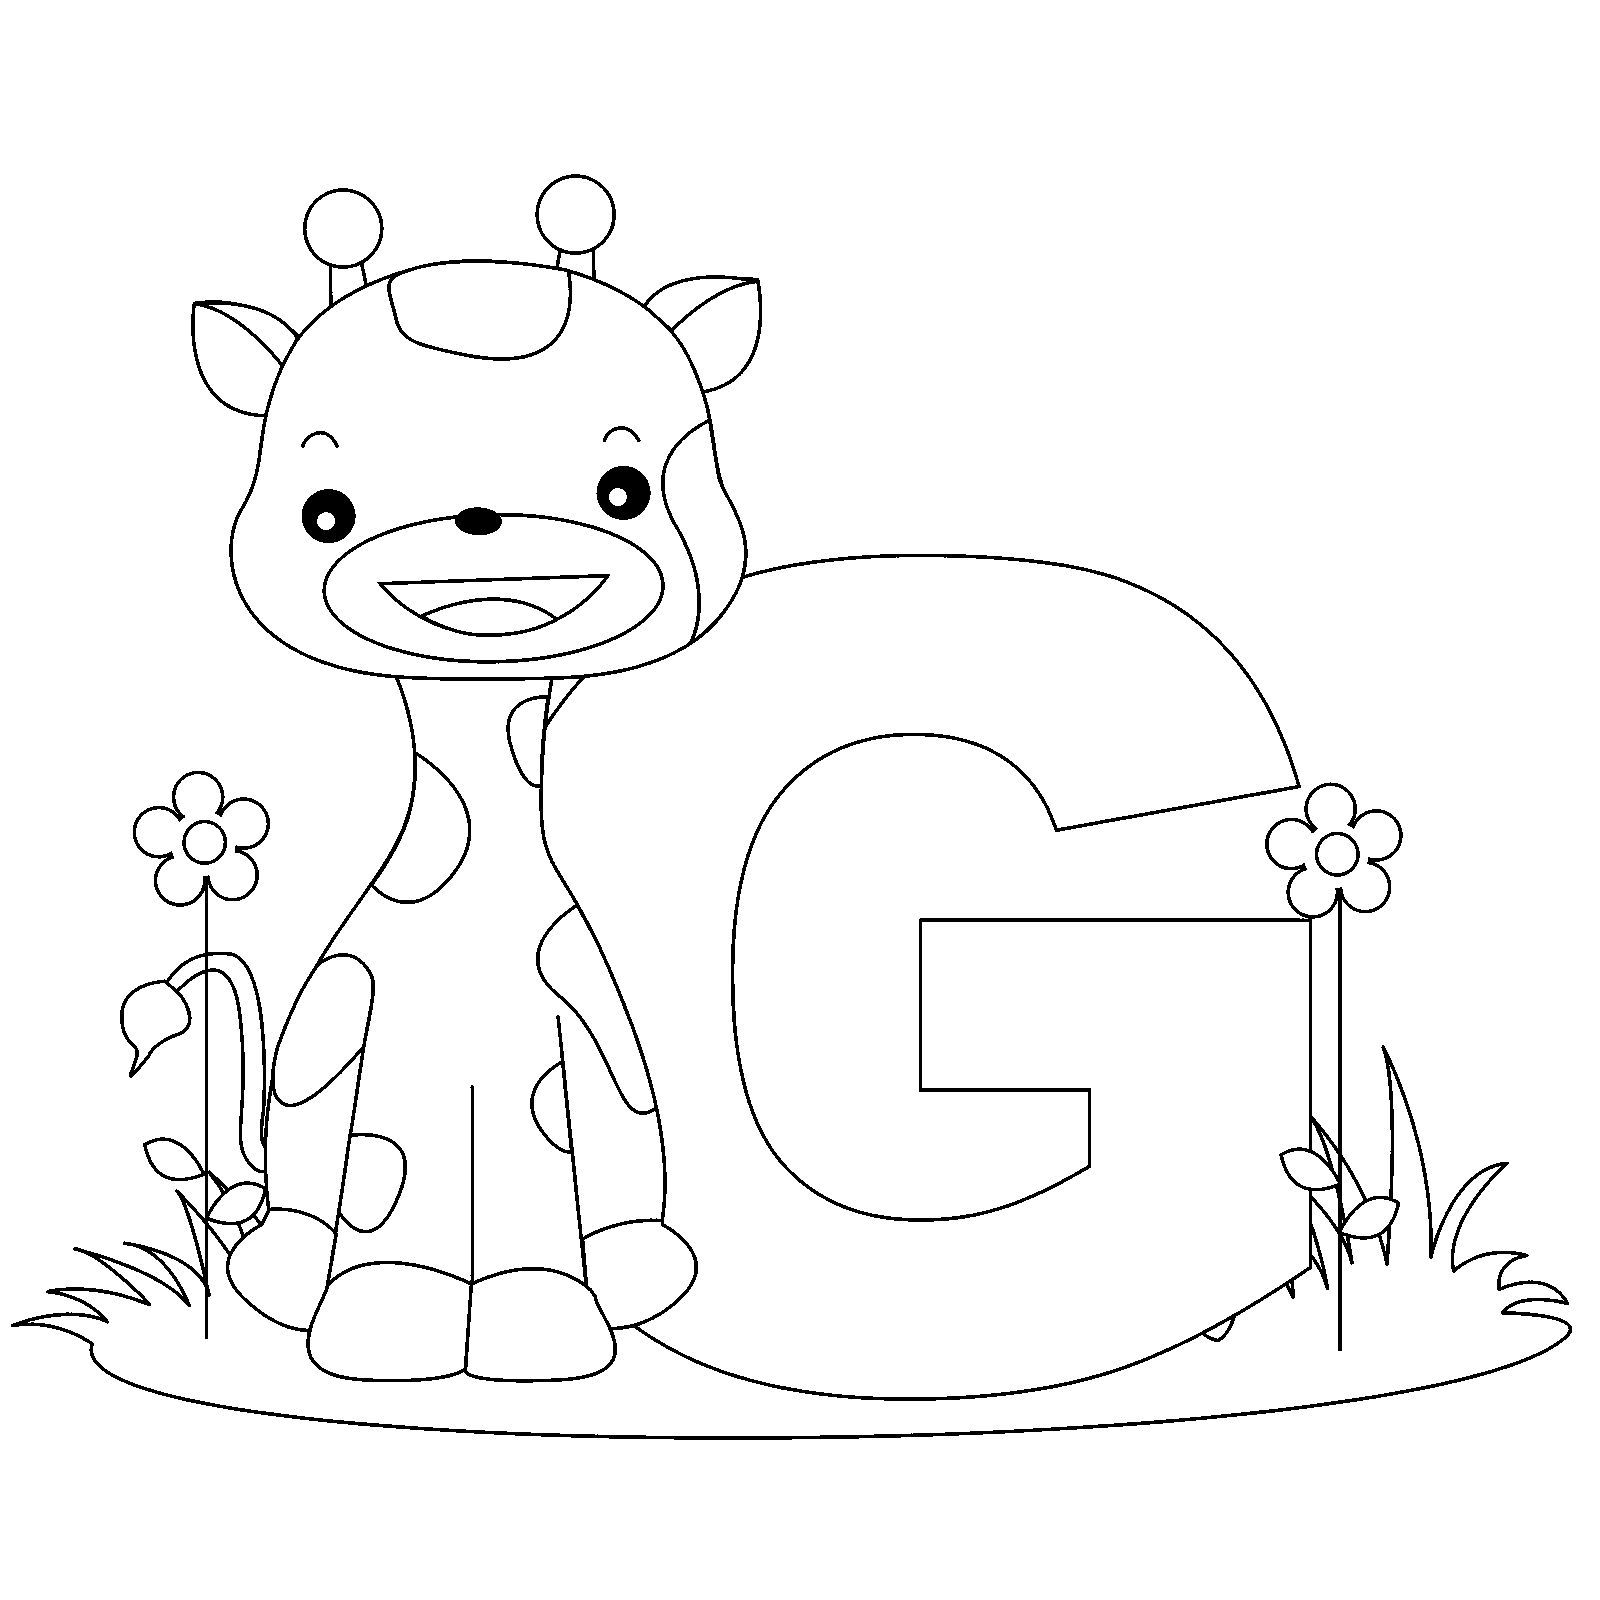 Alphabet page printable - Train Alphabet Coloring Pages Free Image